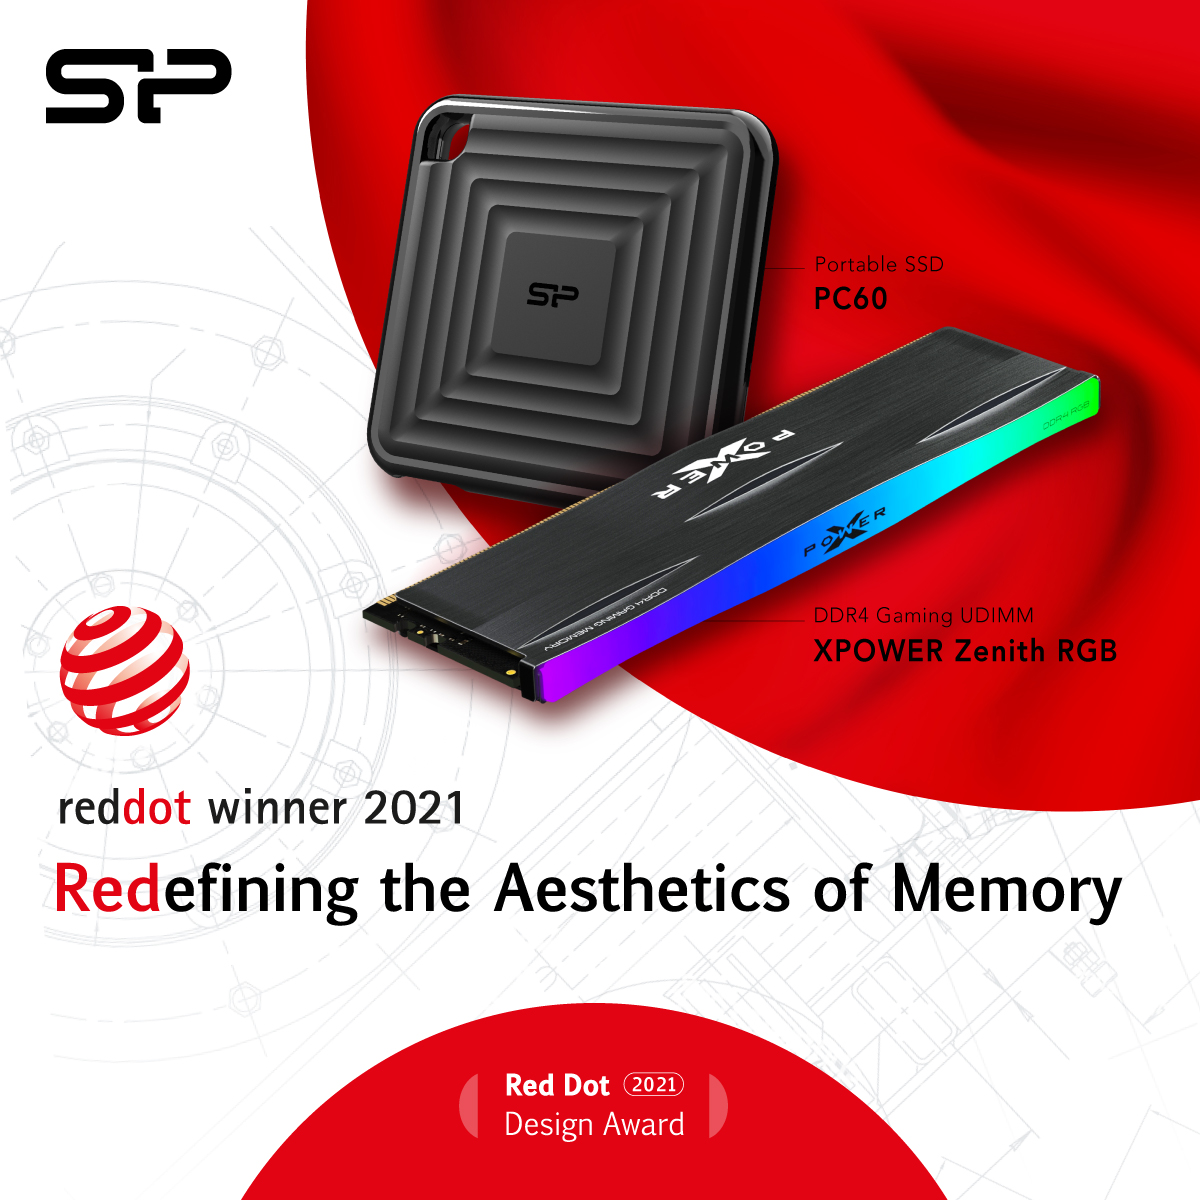 SP Takes Home The Red Dot Award For 2 Products In 2021